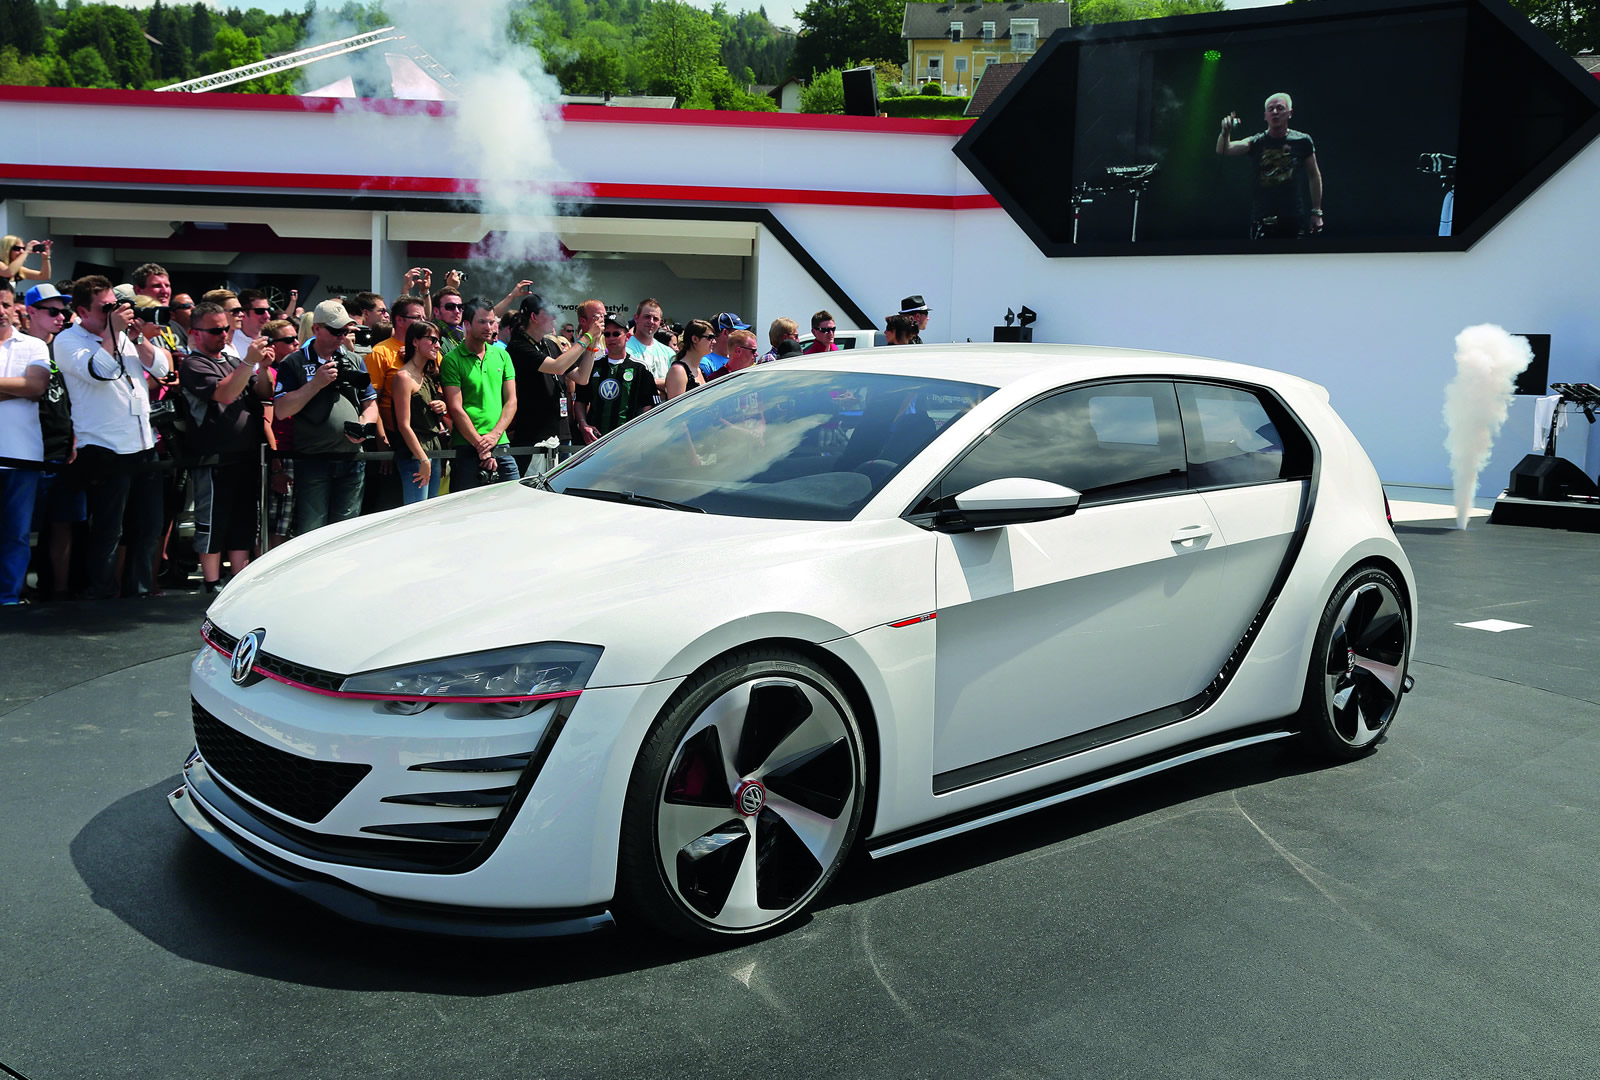 2013 Volkswagen Design Vision GTI Concept photo - 3